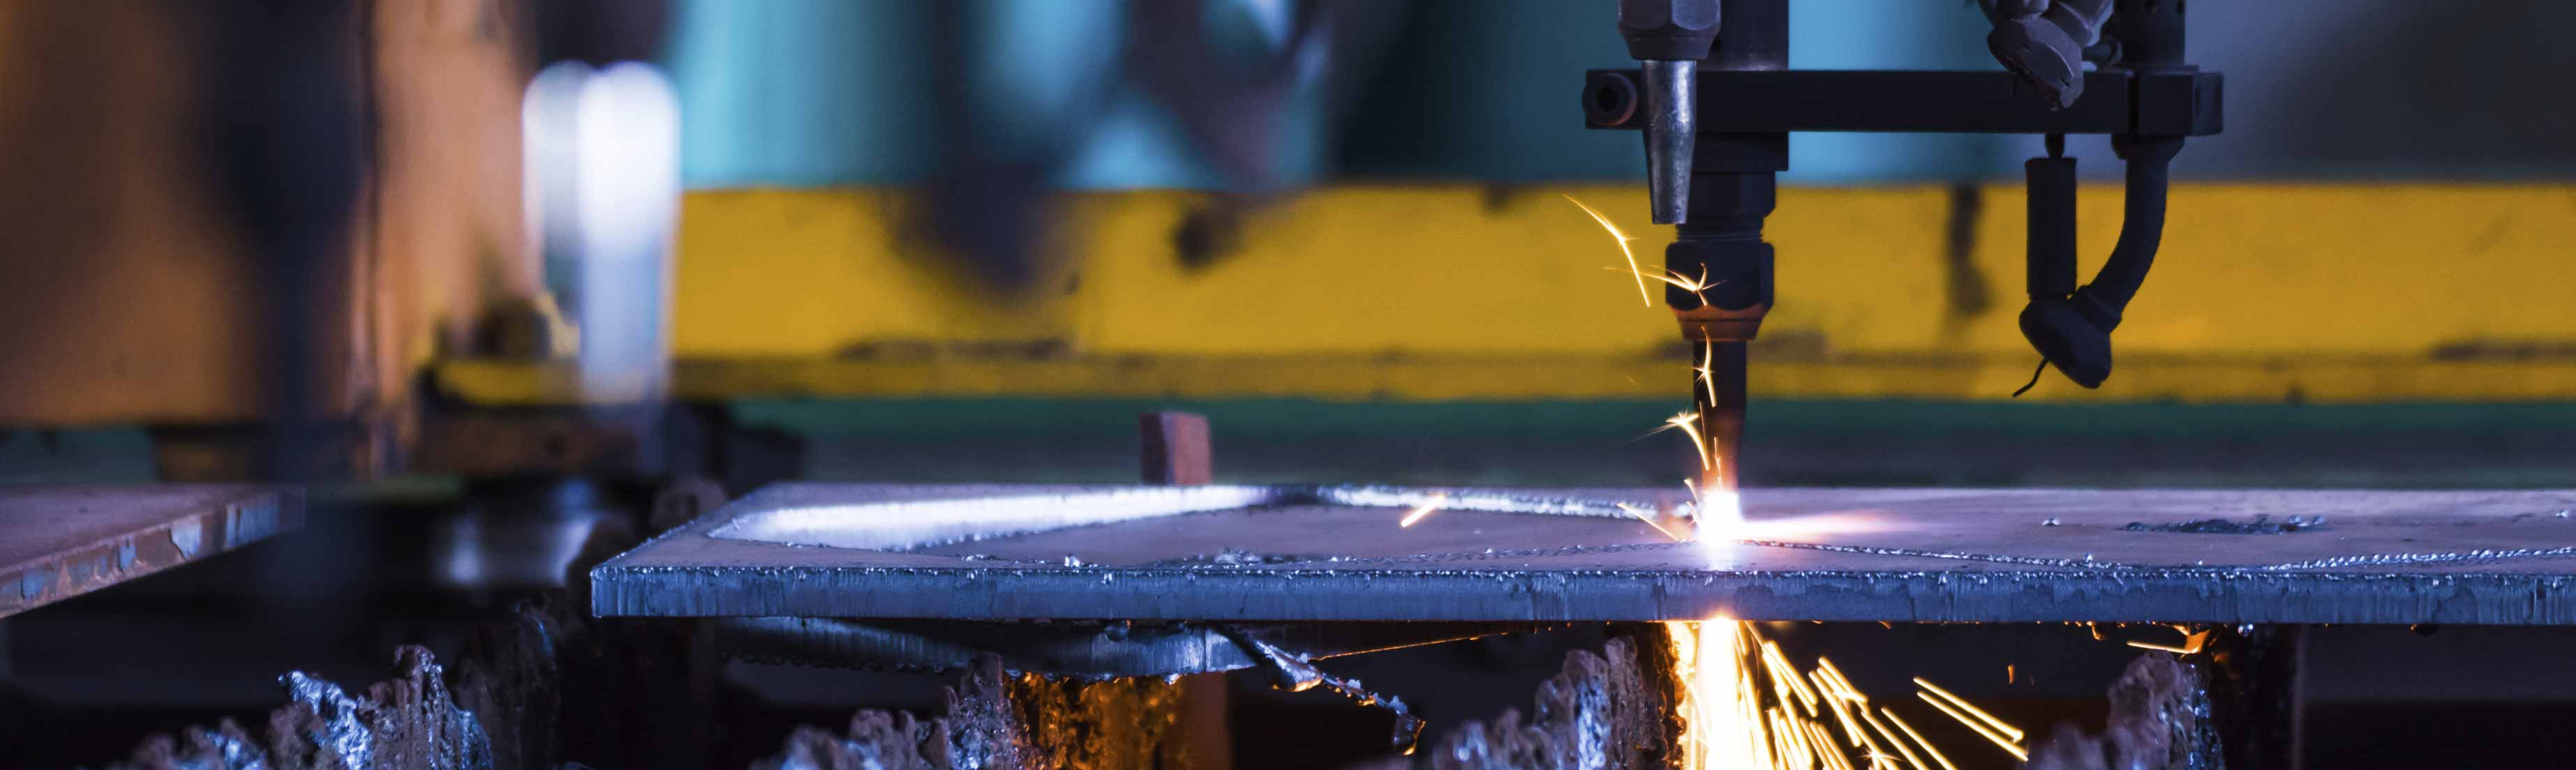 Welding machinery being used